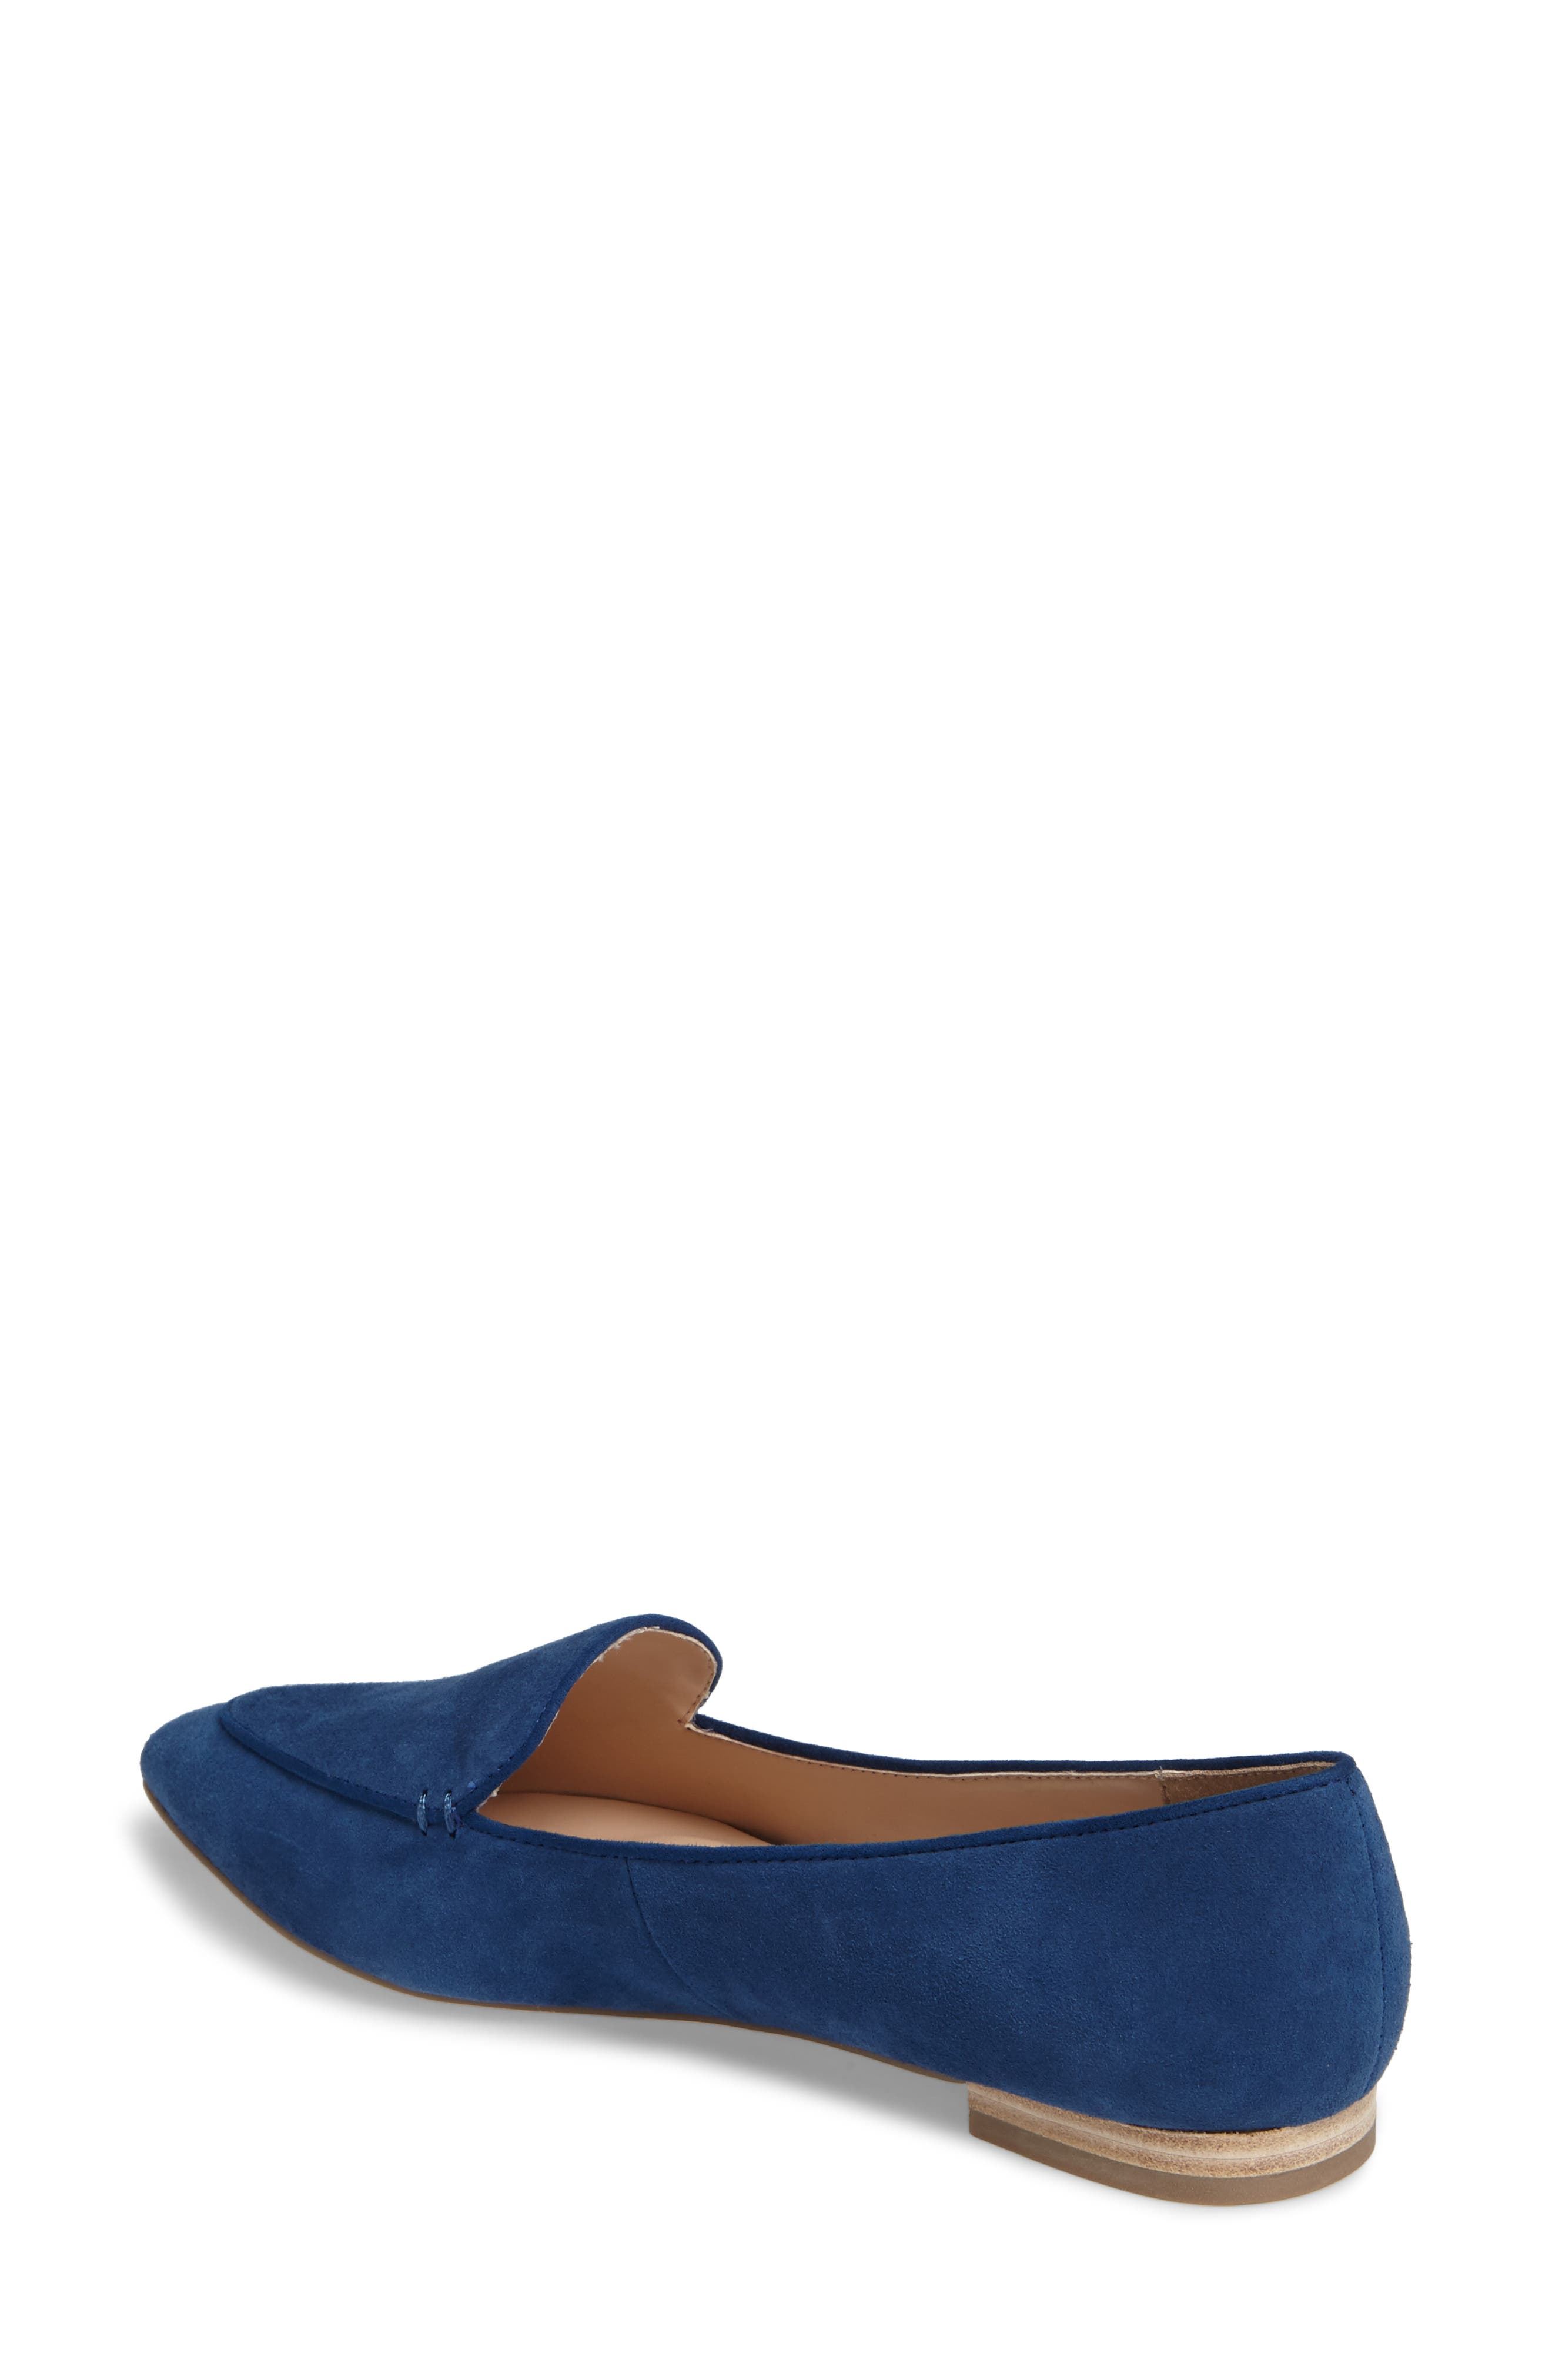 'Cammila' Pointy Toe Loafer,                             Alternate thumbnail 13, color,